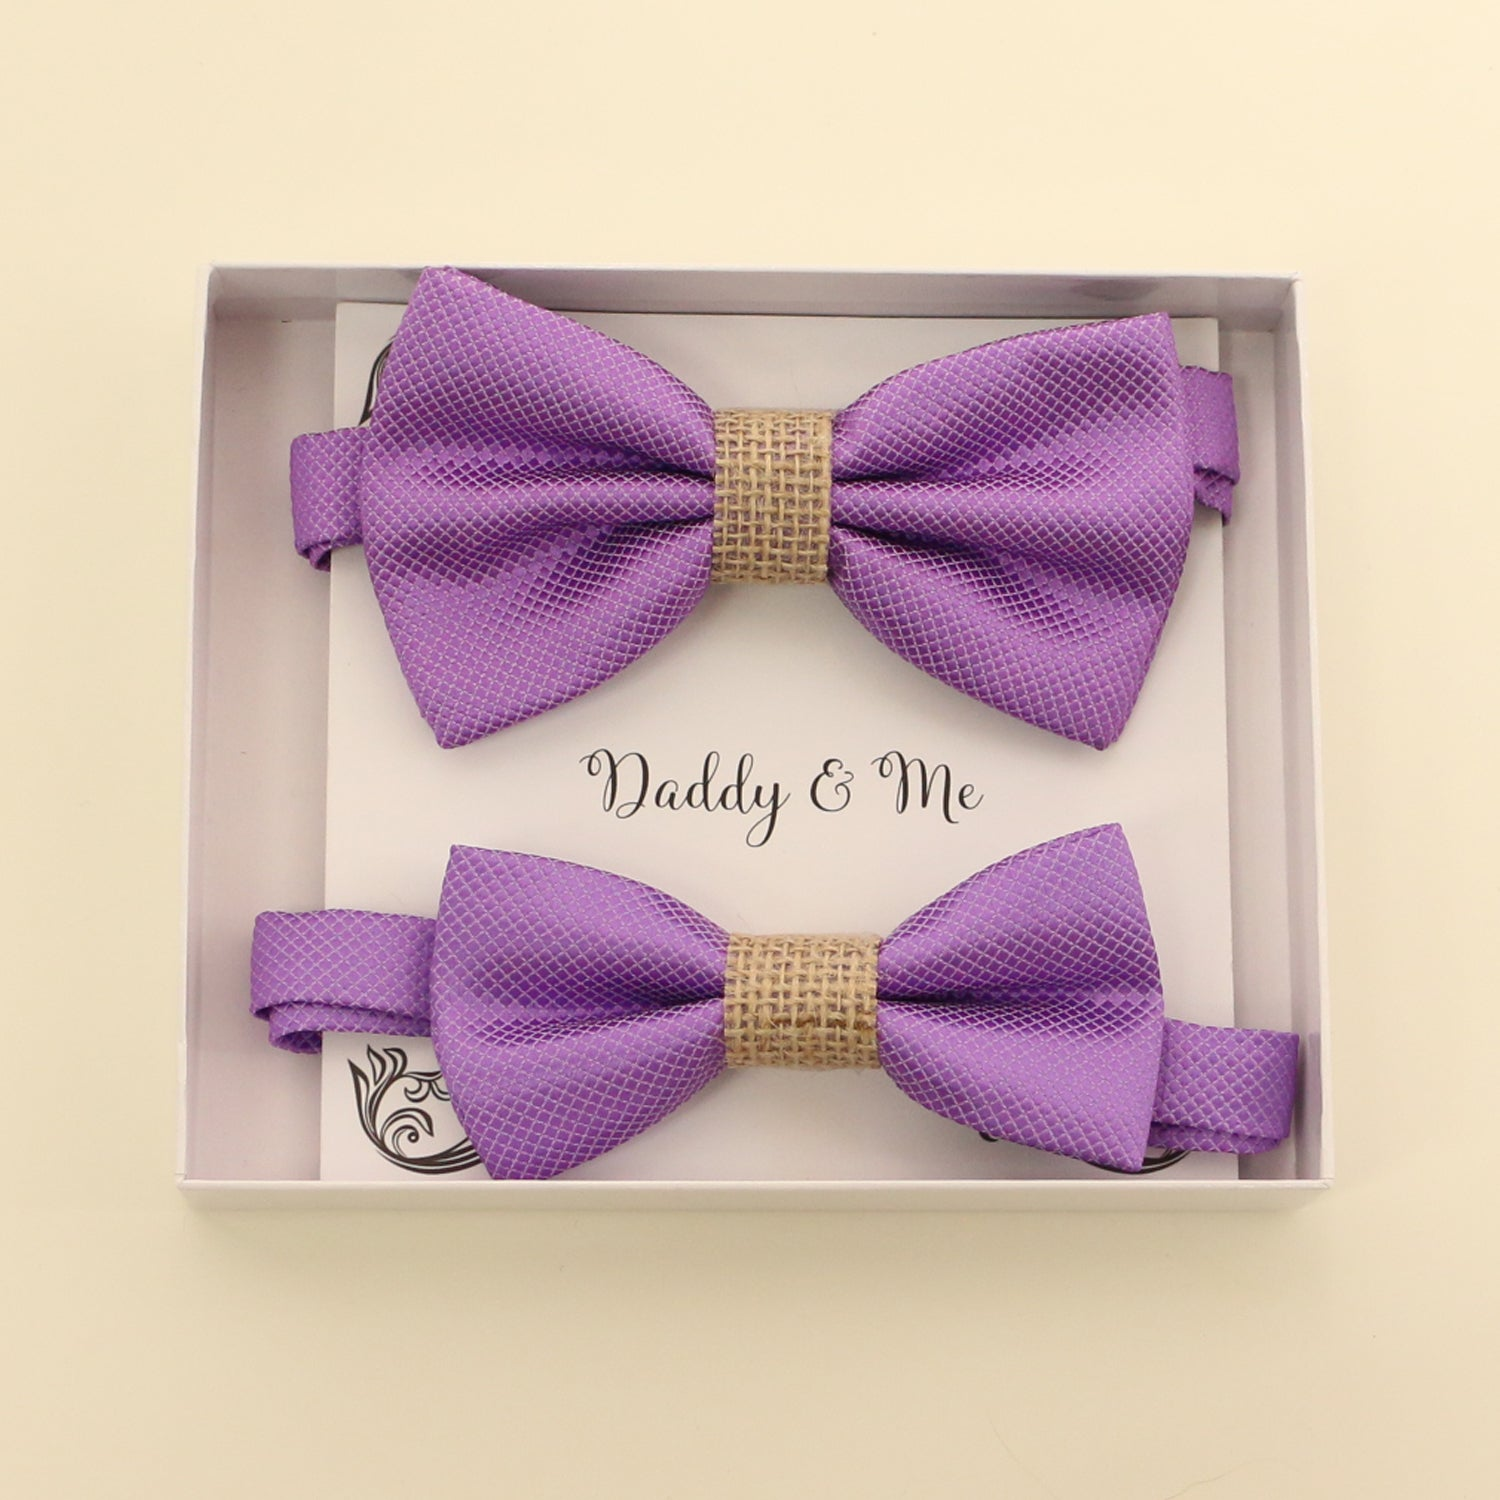 Lavender burlap Bow tie set for daddy and son, Daddy me gift set, Grandpa and me, Father son match, lavender bow for kids bow tie, handmade